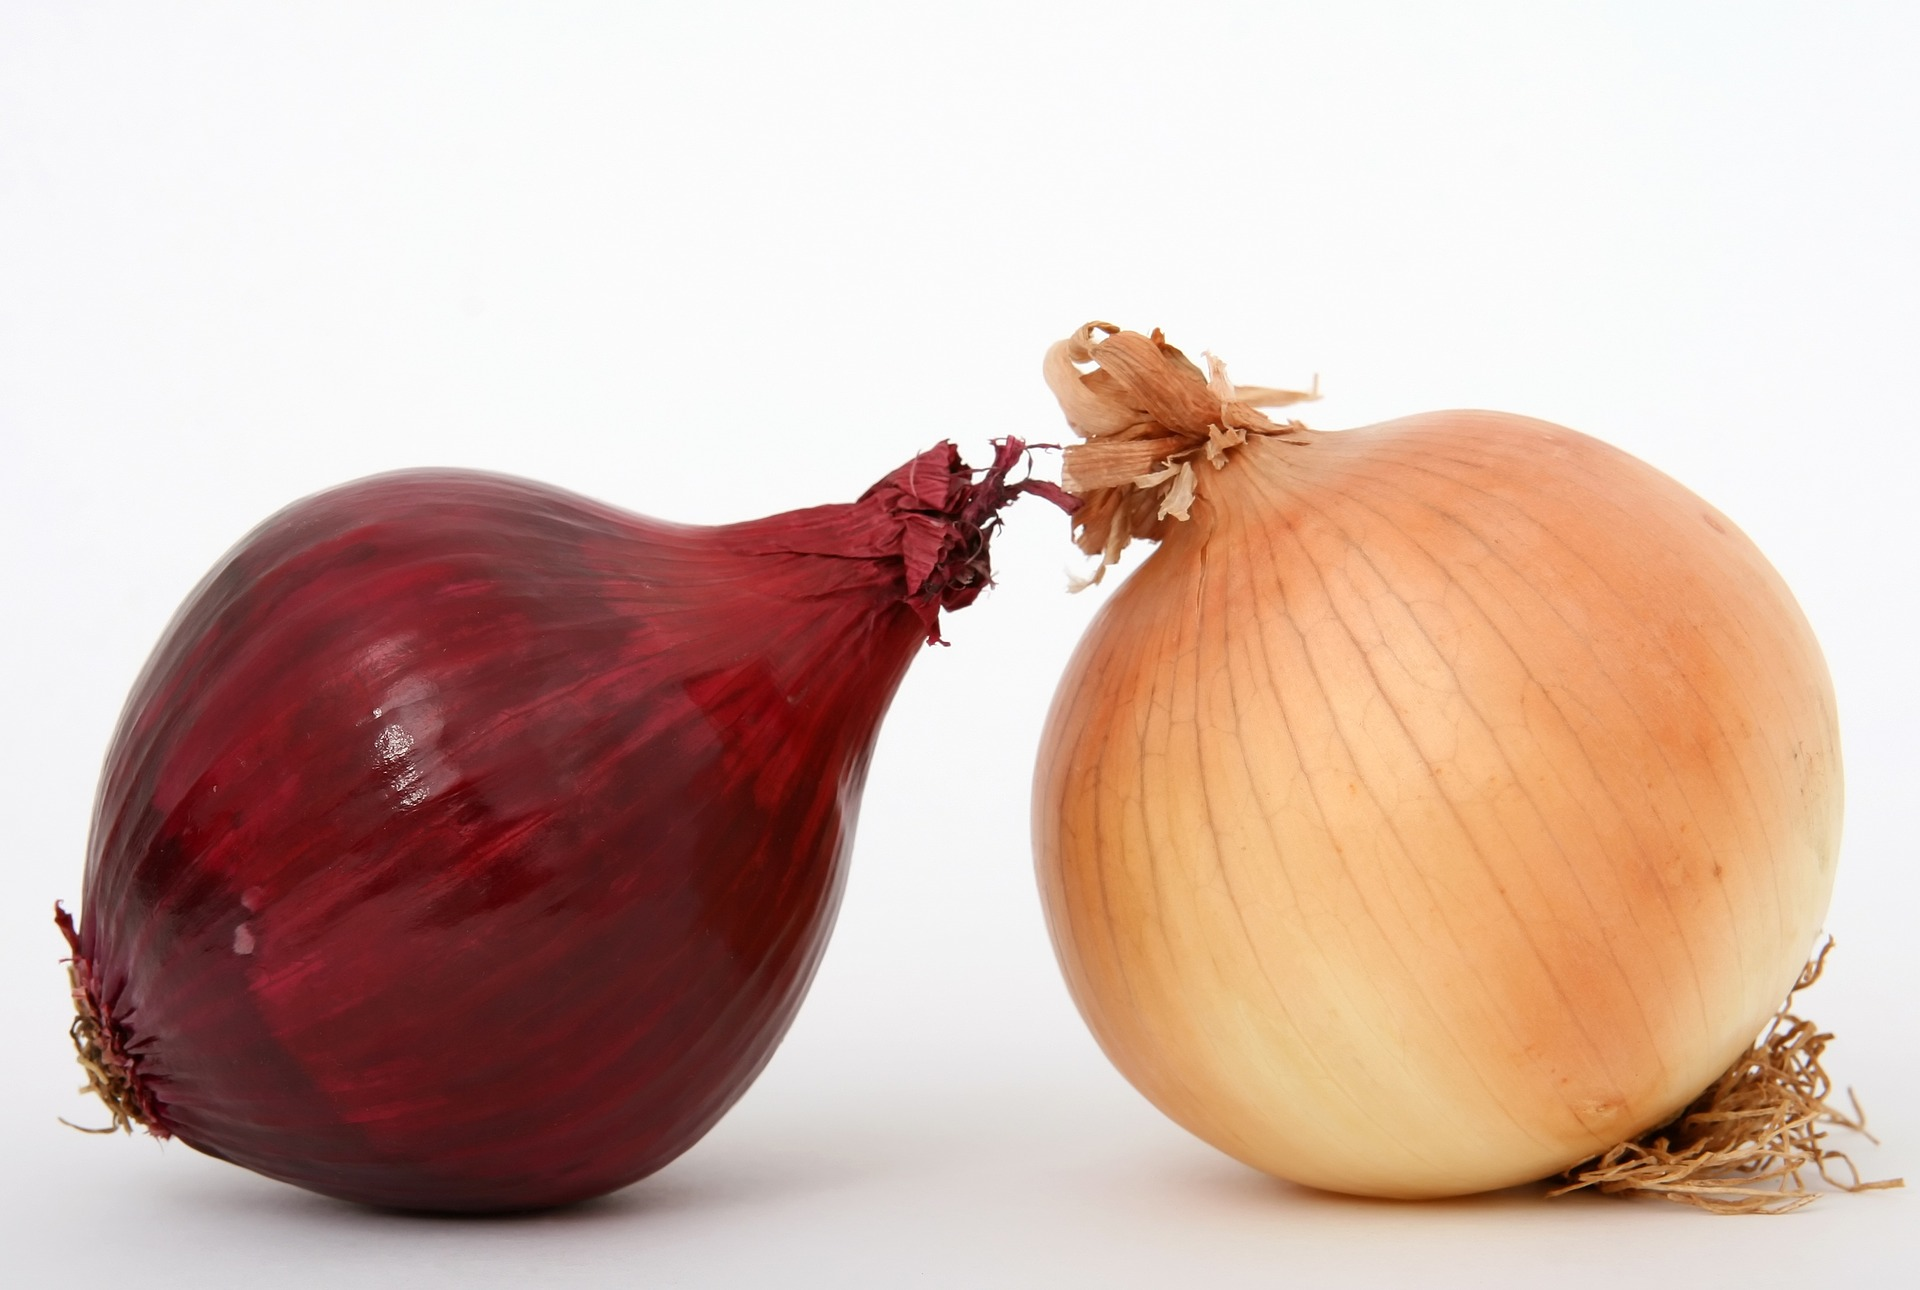 a red onion next to a yellow onion